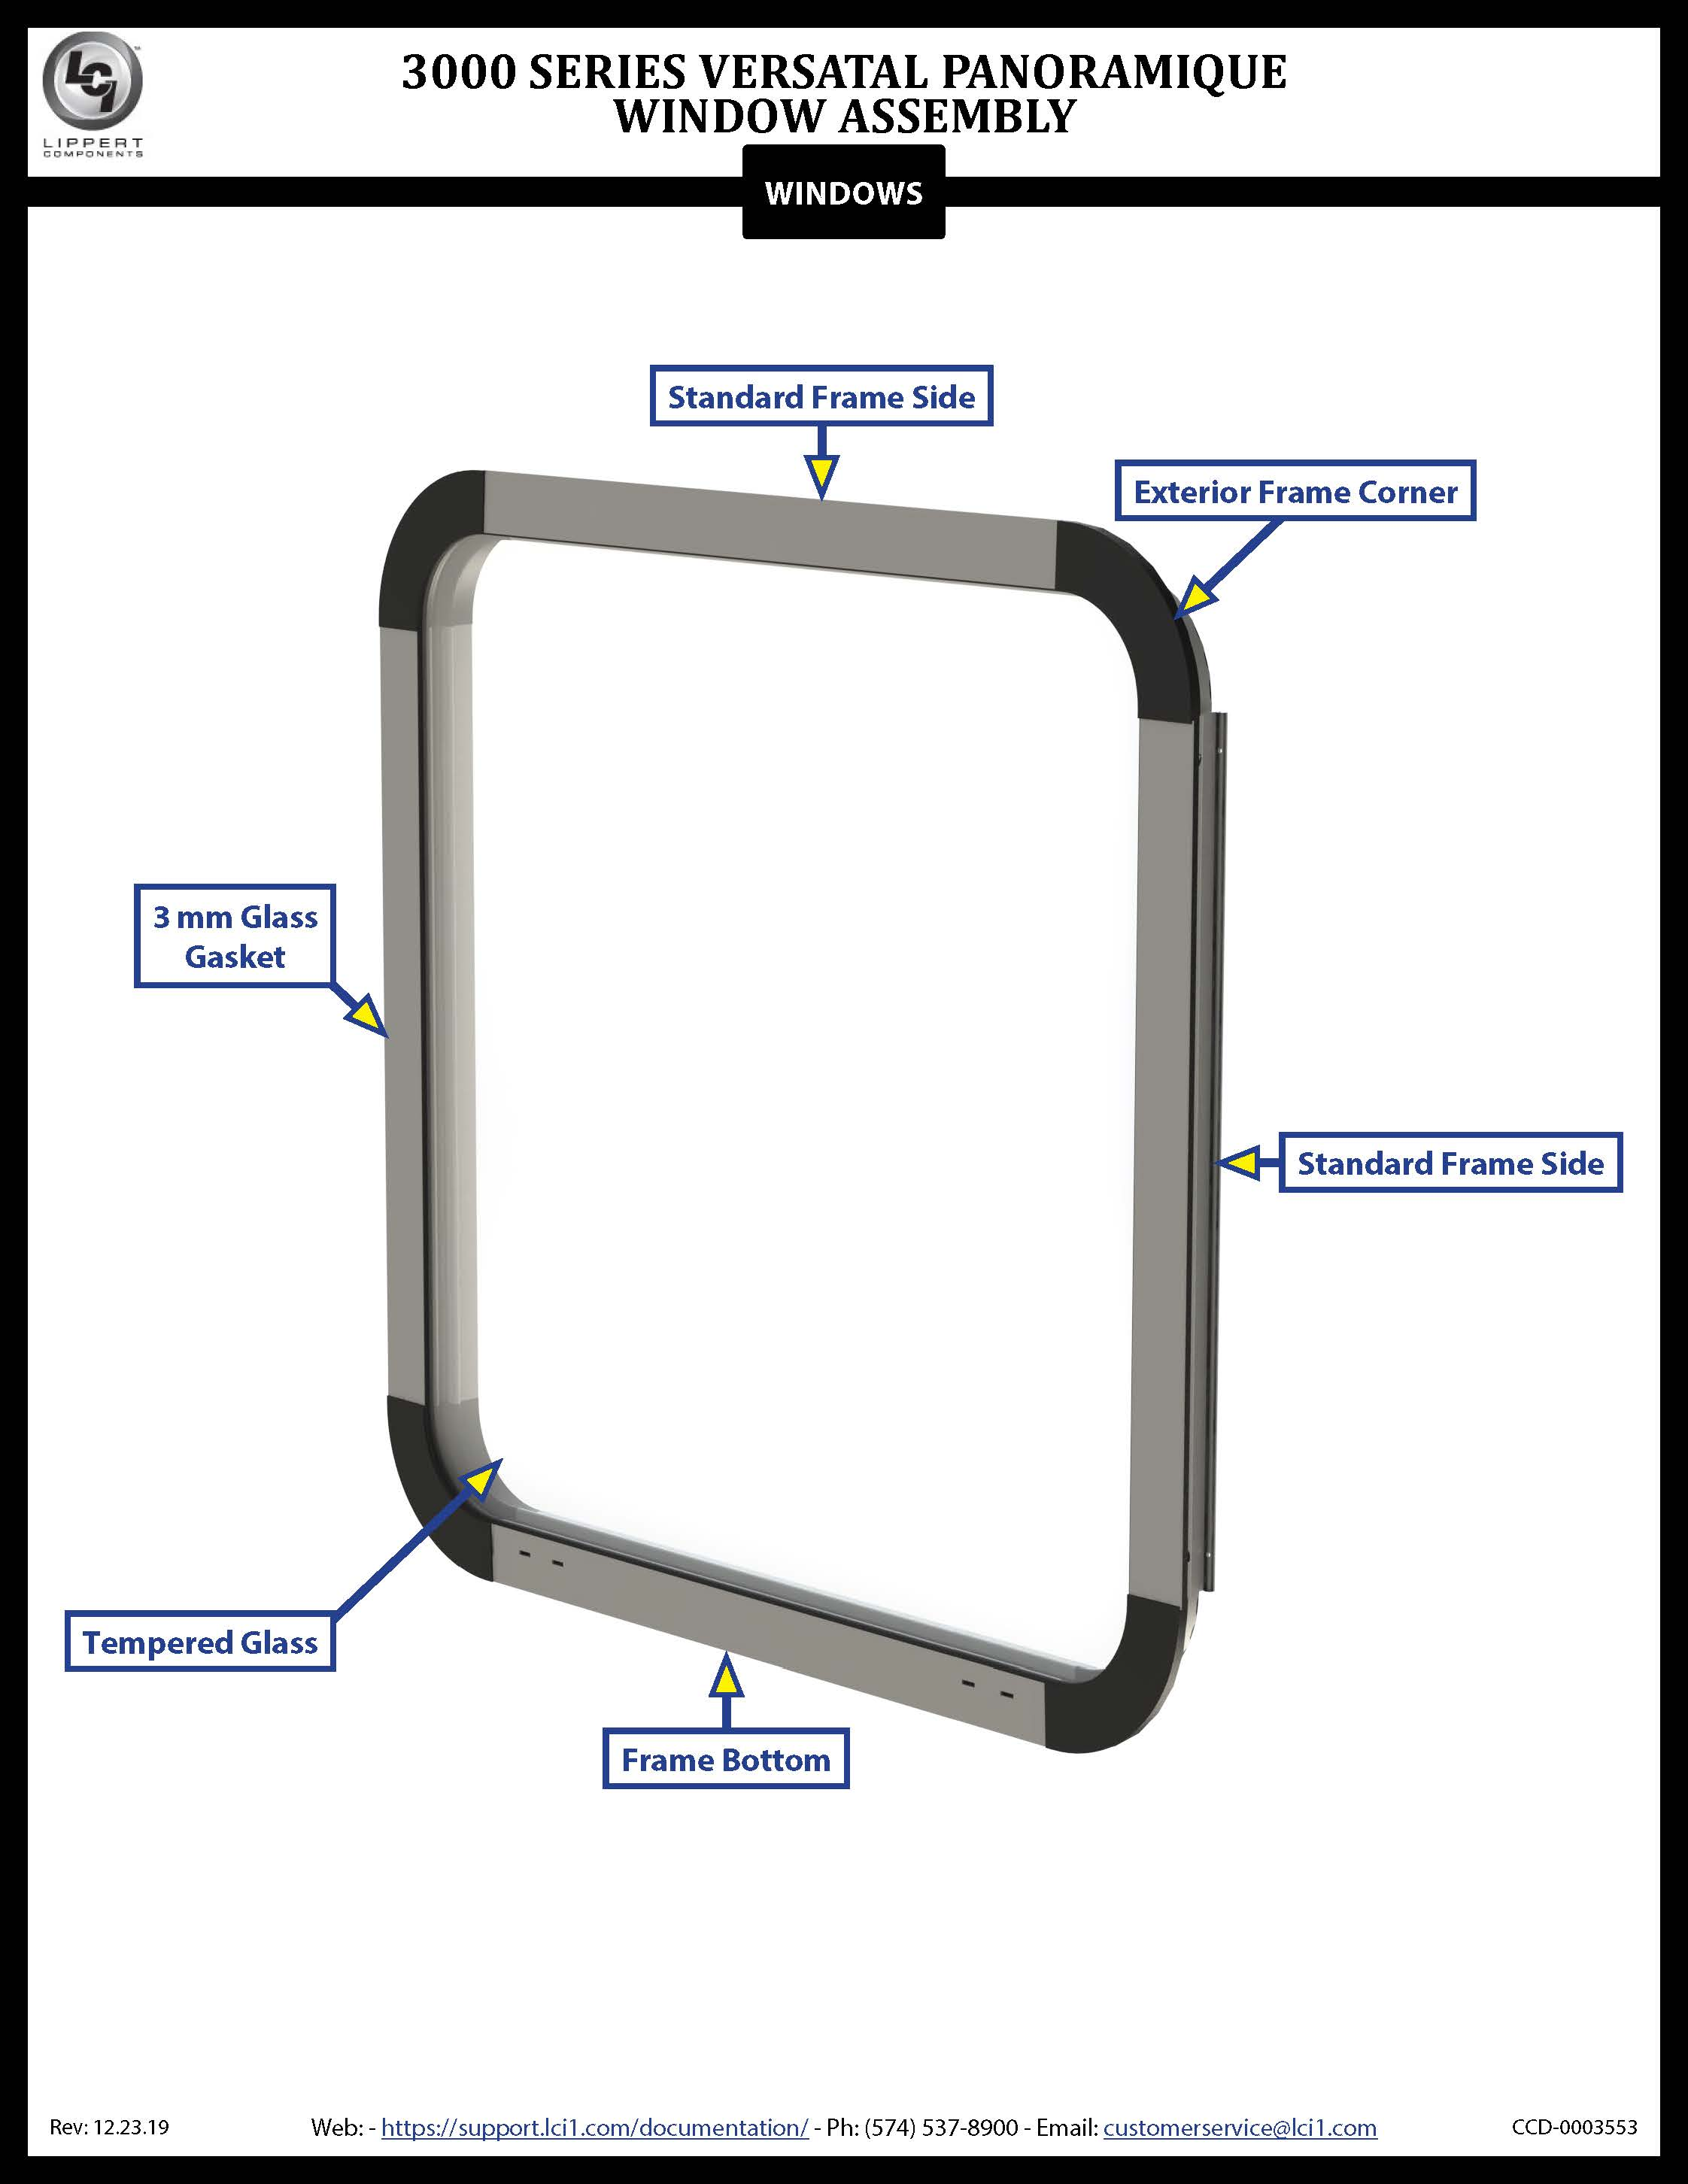 3000 Series Versatal Panoramique Window Assembly